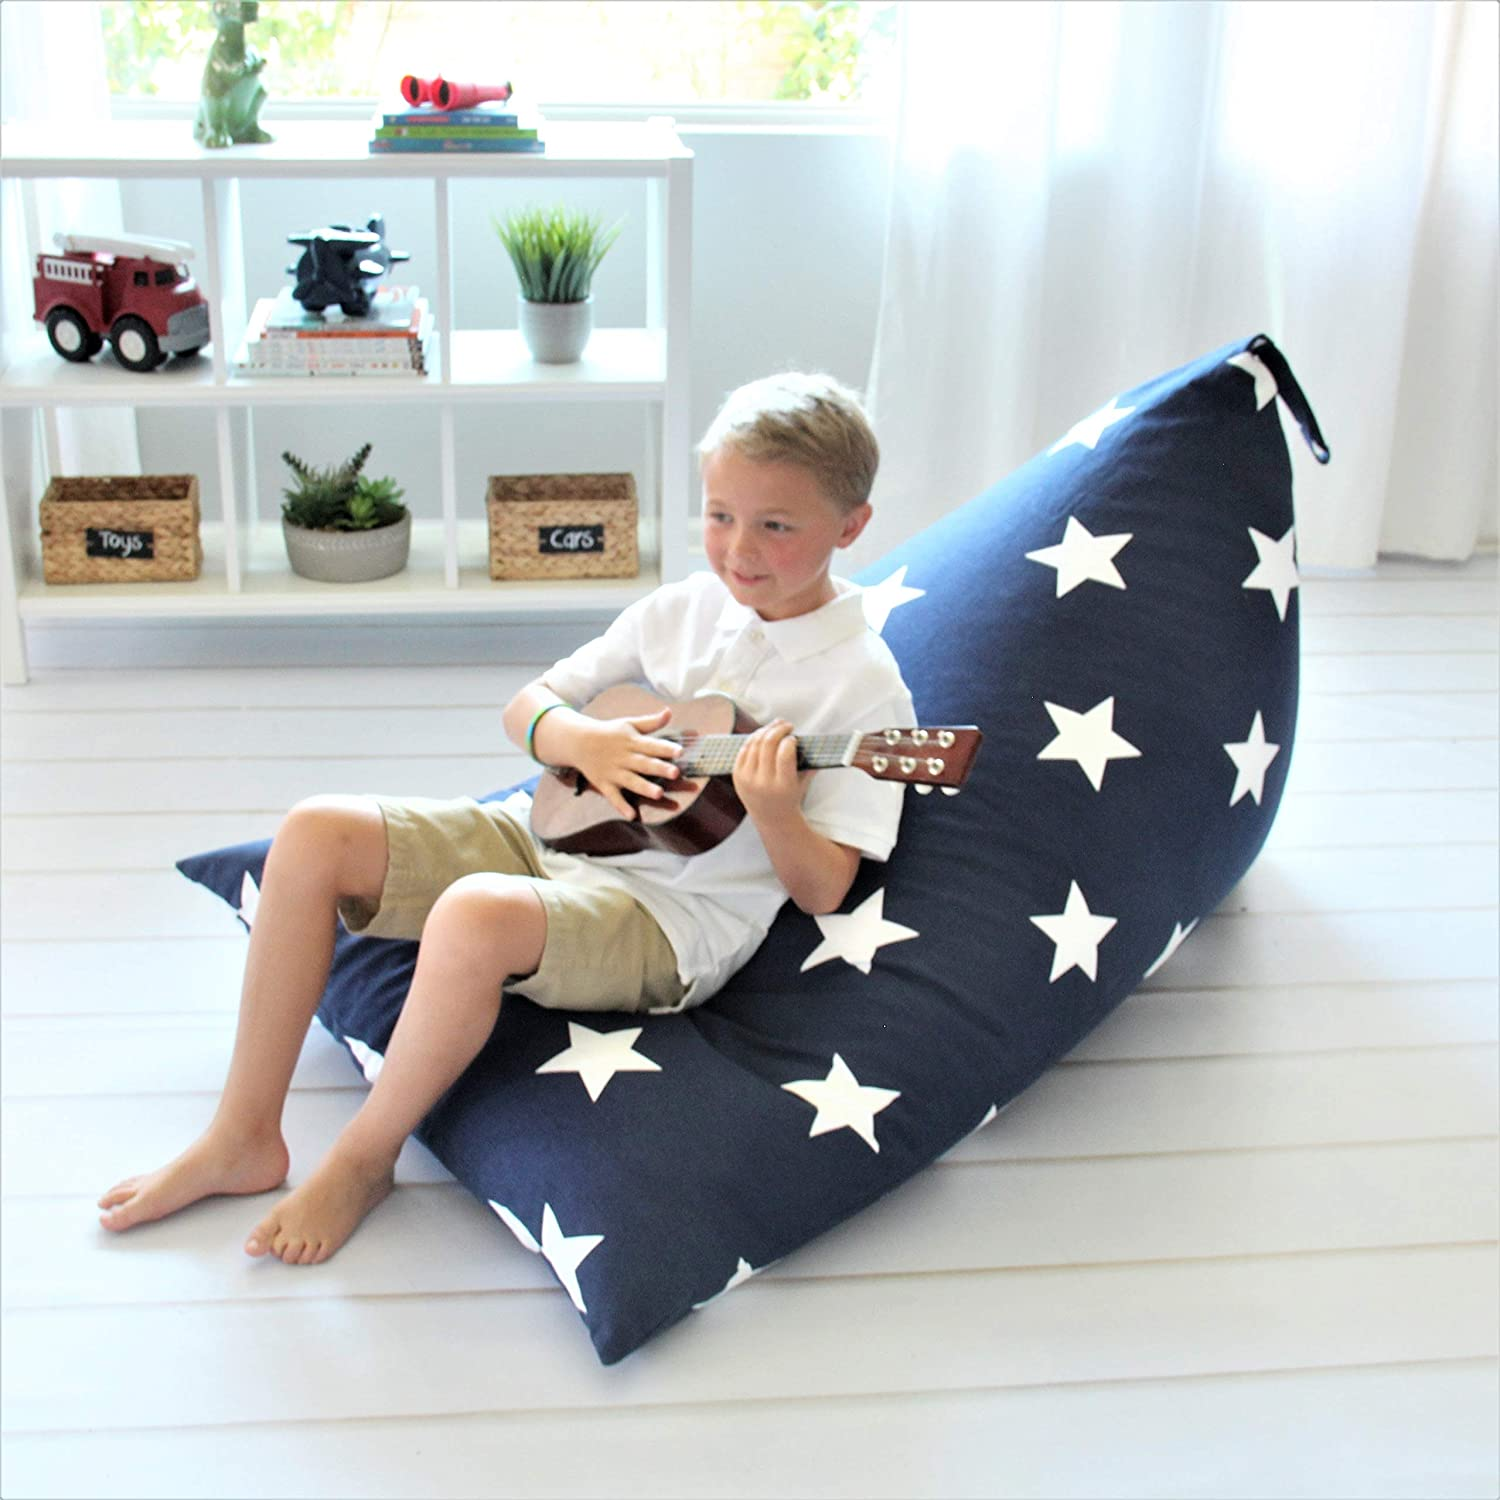 Butterfly Craze Stuffed Animal Storage Bean Bag Chair - Stuff 'n Sit Toy Bag Floor Lounger for Kids, Teens and Adult |Extra Large 200L/52 Gal Capacity |Premium Cotton Canvas (Navy)